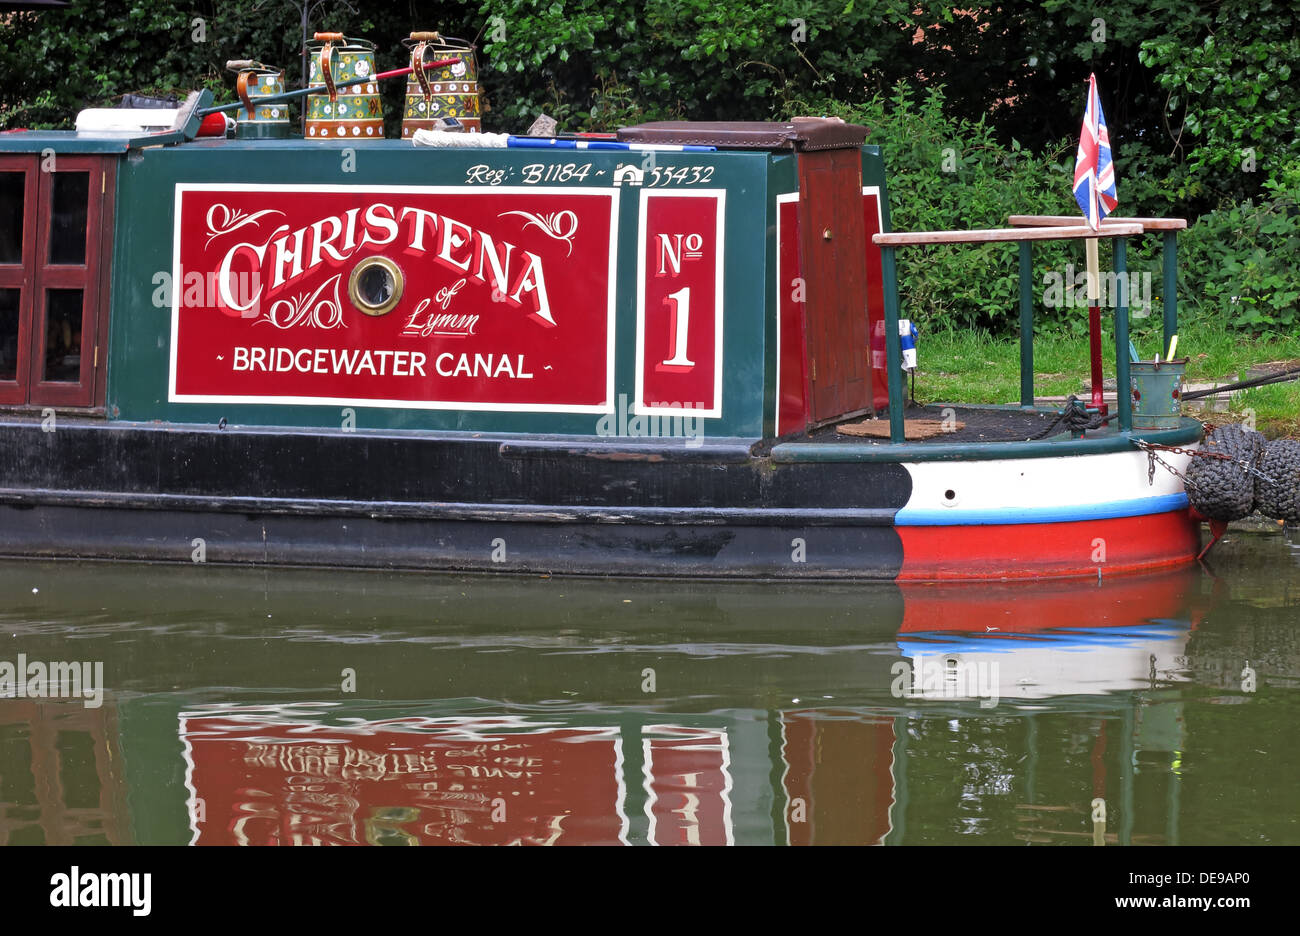 Bridgewater,Canal,boat,narrowboat,reflection,reflected,Lymm,water,in red,Grappenhall,Cheshire,England,UK,GB,United Kingdom,Great,Britain,No1,No,1,one,Number one,traditional,old,fashioned,flag,painted,barges,canals,holiday,tourist,tourism,Runcorn,Manchester,Worsley,coal,transport,old fashioned,gotonysmith,reflect,British,Waterways,Trust,Still,calm,holidays,network,festival,canal boat,canal boats,Buy Pictures of,Buy Images Of